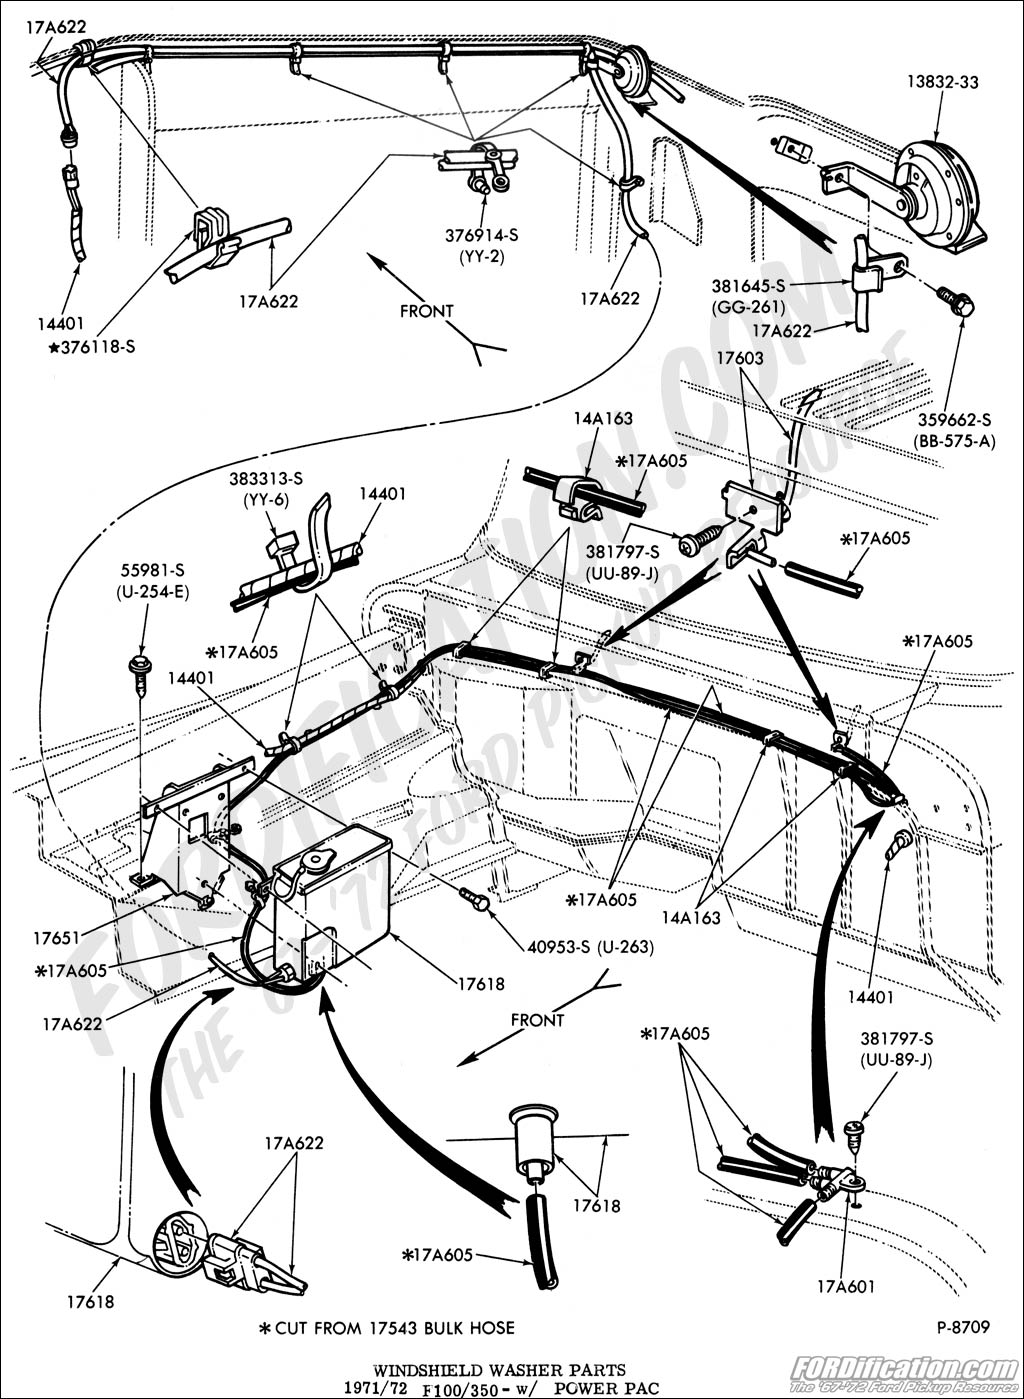 With Chevy Truck Wiring Diagram On 1969 Ford F 250 66 Thunderbird 1968 Turn Signal Library Technical Drawings And Schematics